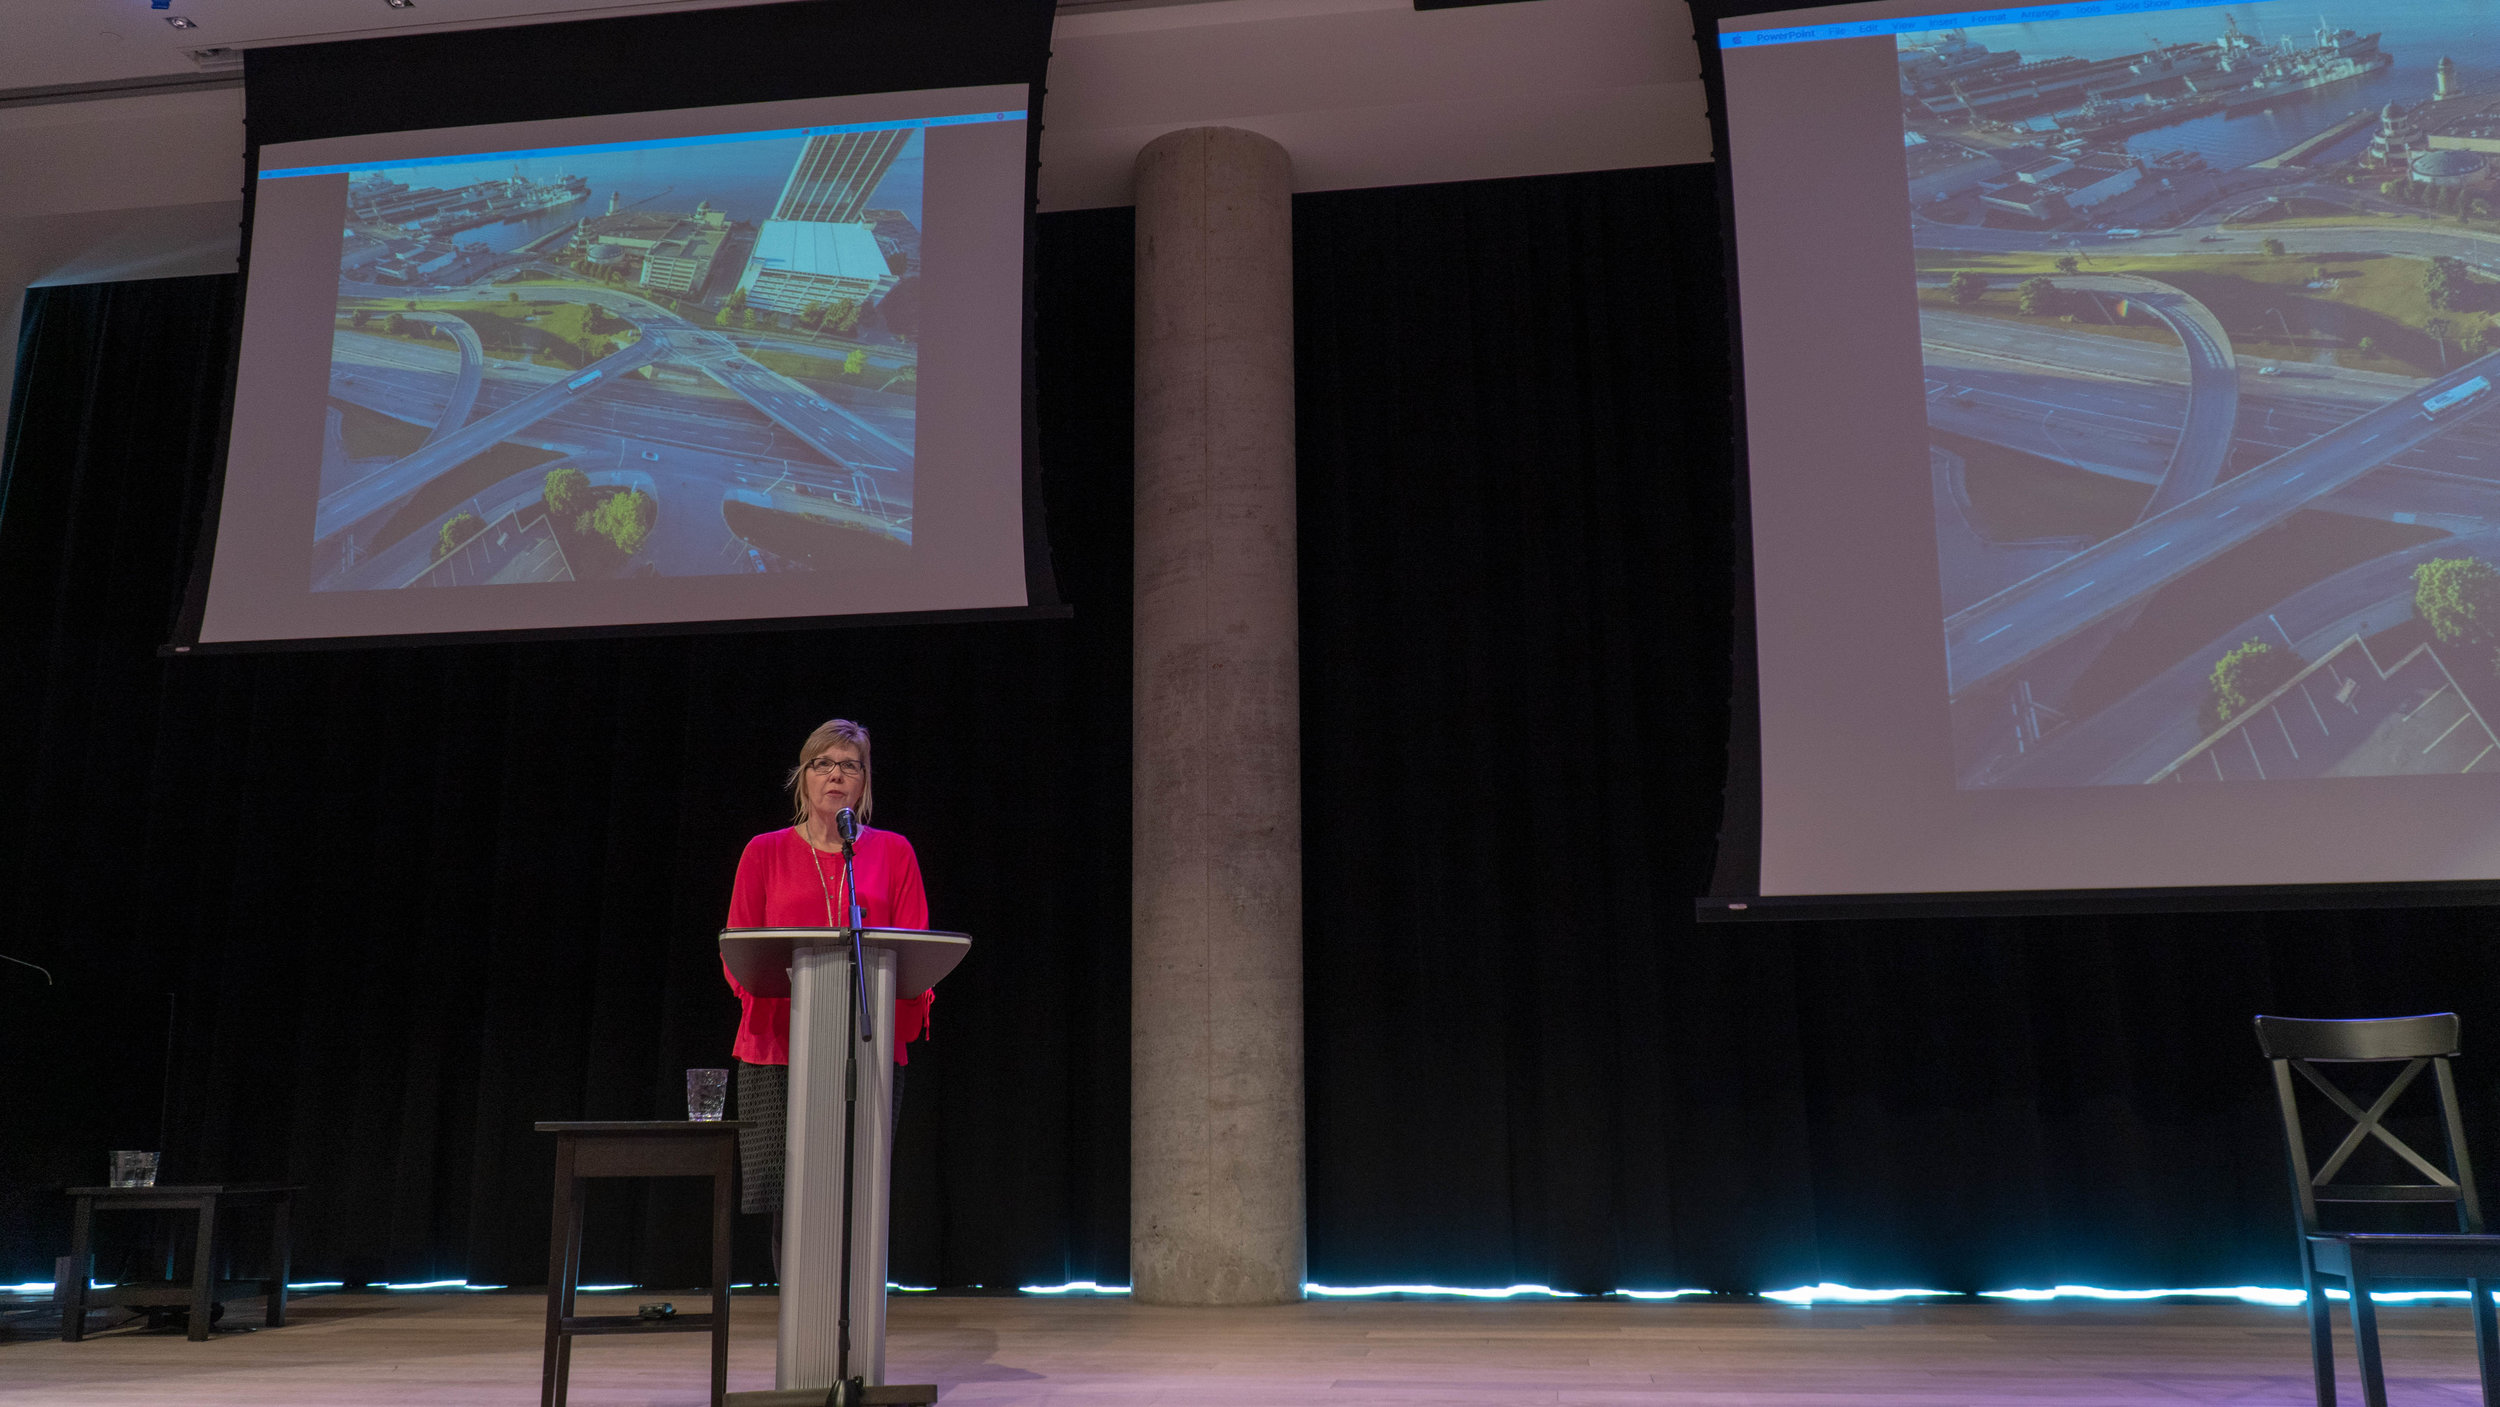 Donna Davis, Halifax - The Cogswell Interchange in Halifax is widely regarded as a mistake, a relic of misguided transportation planning policies. However, the Cogswell Interchange may be a blemish on the city of Halifax, it might also be its greatest opportunity.